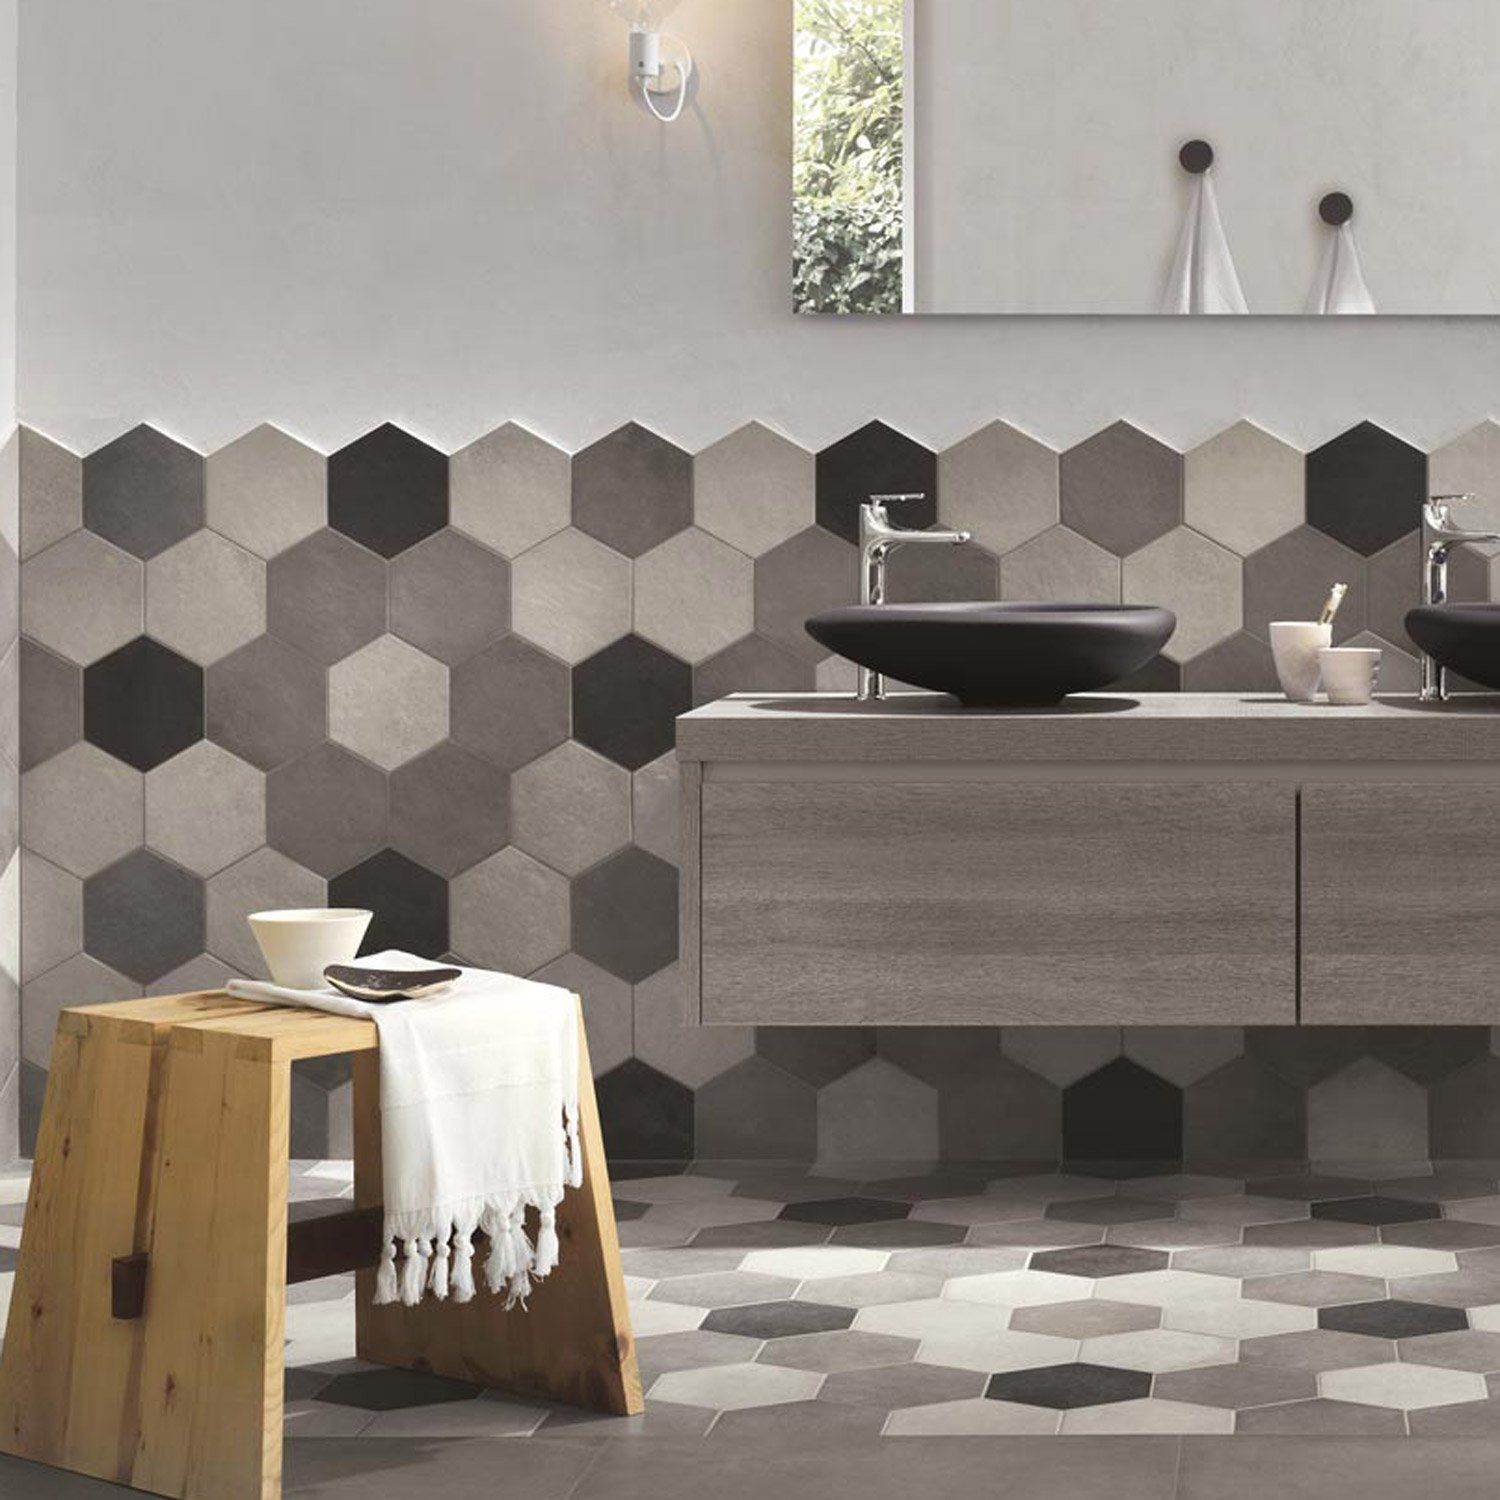 Carrelage sol et mur gris ciment effet b ton time x l for Carrelage hexagonal parquet